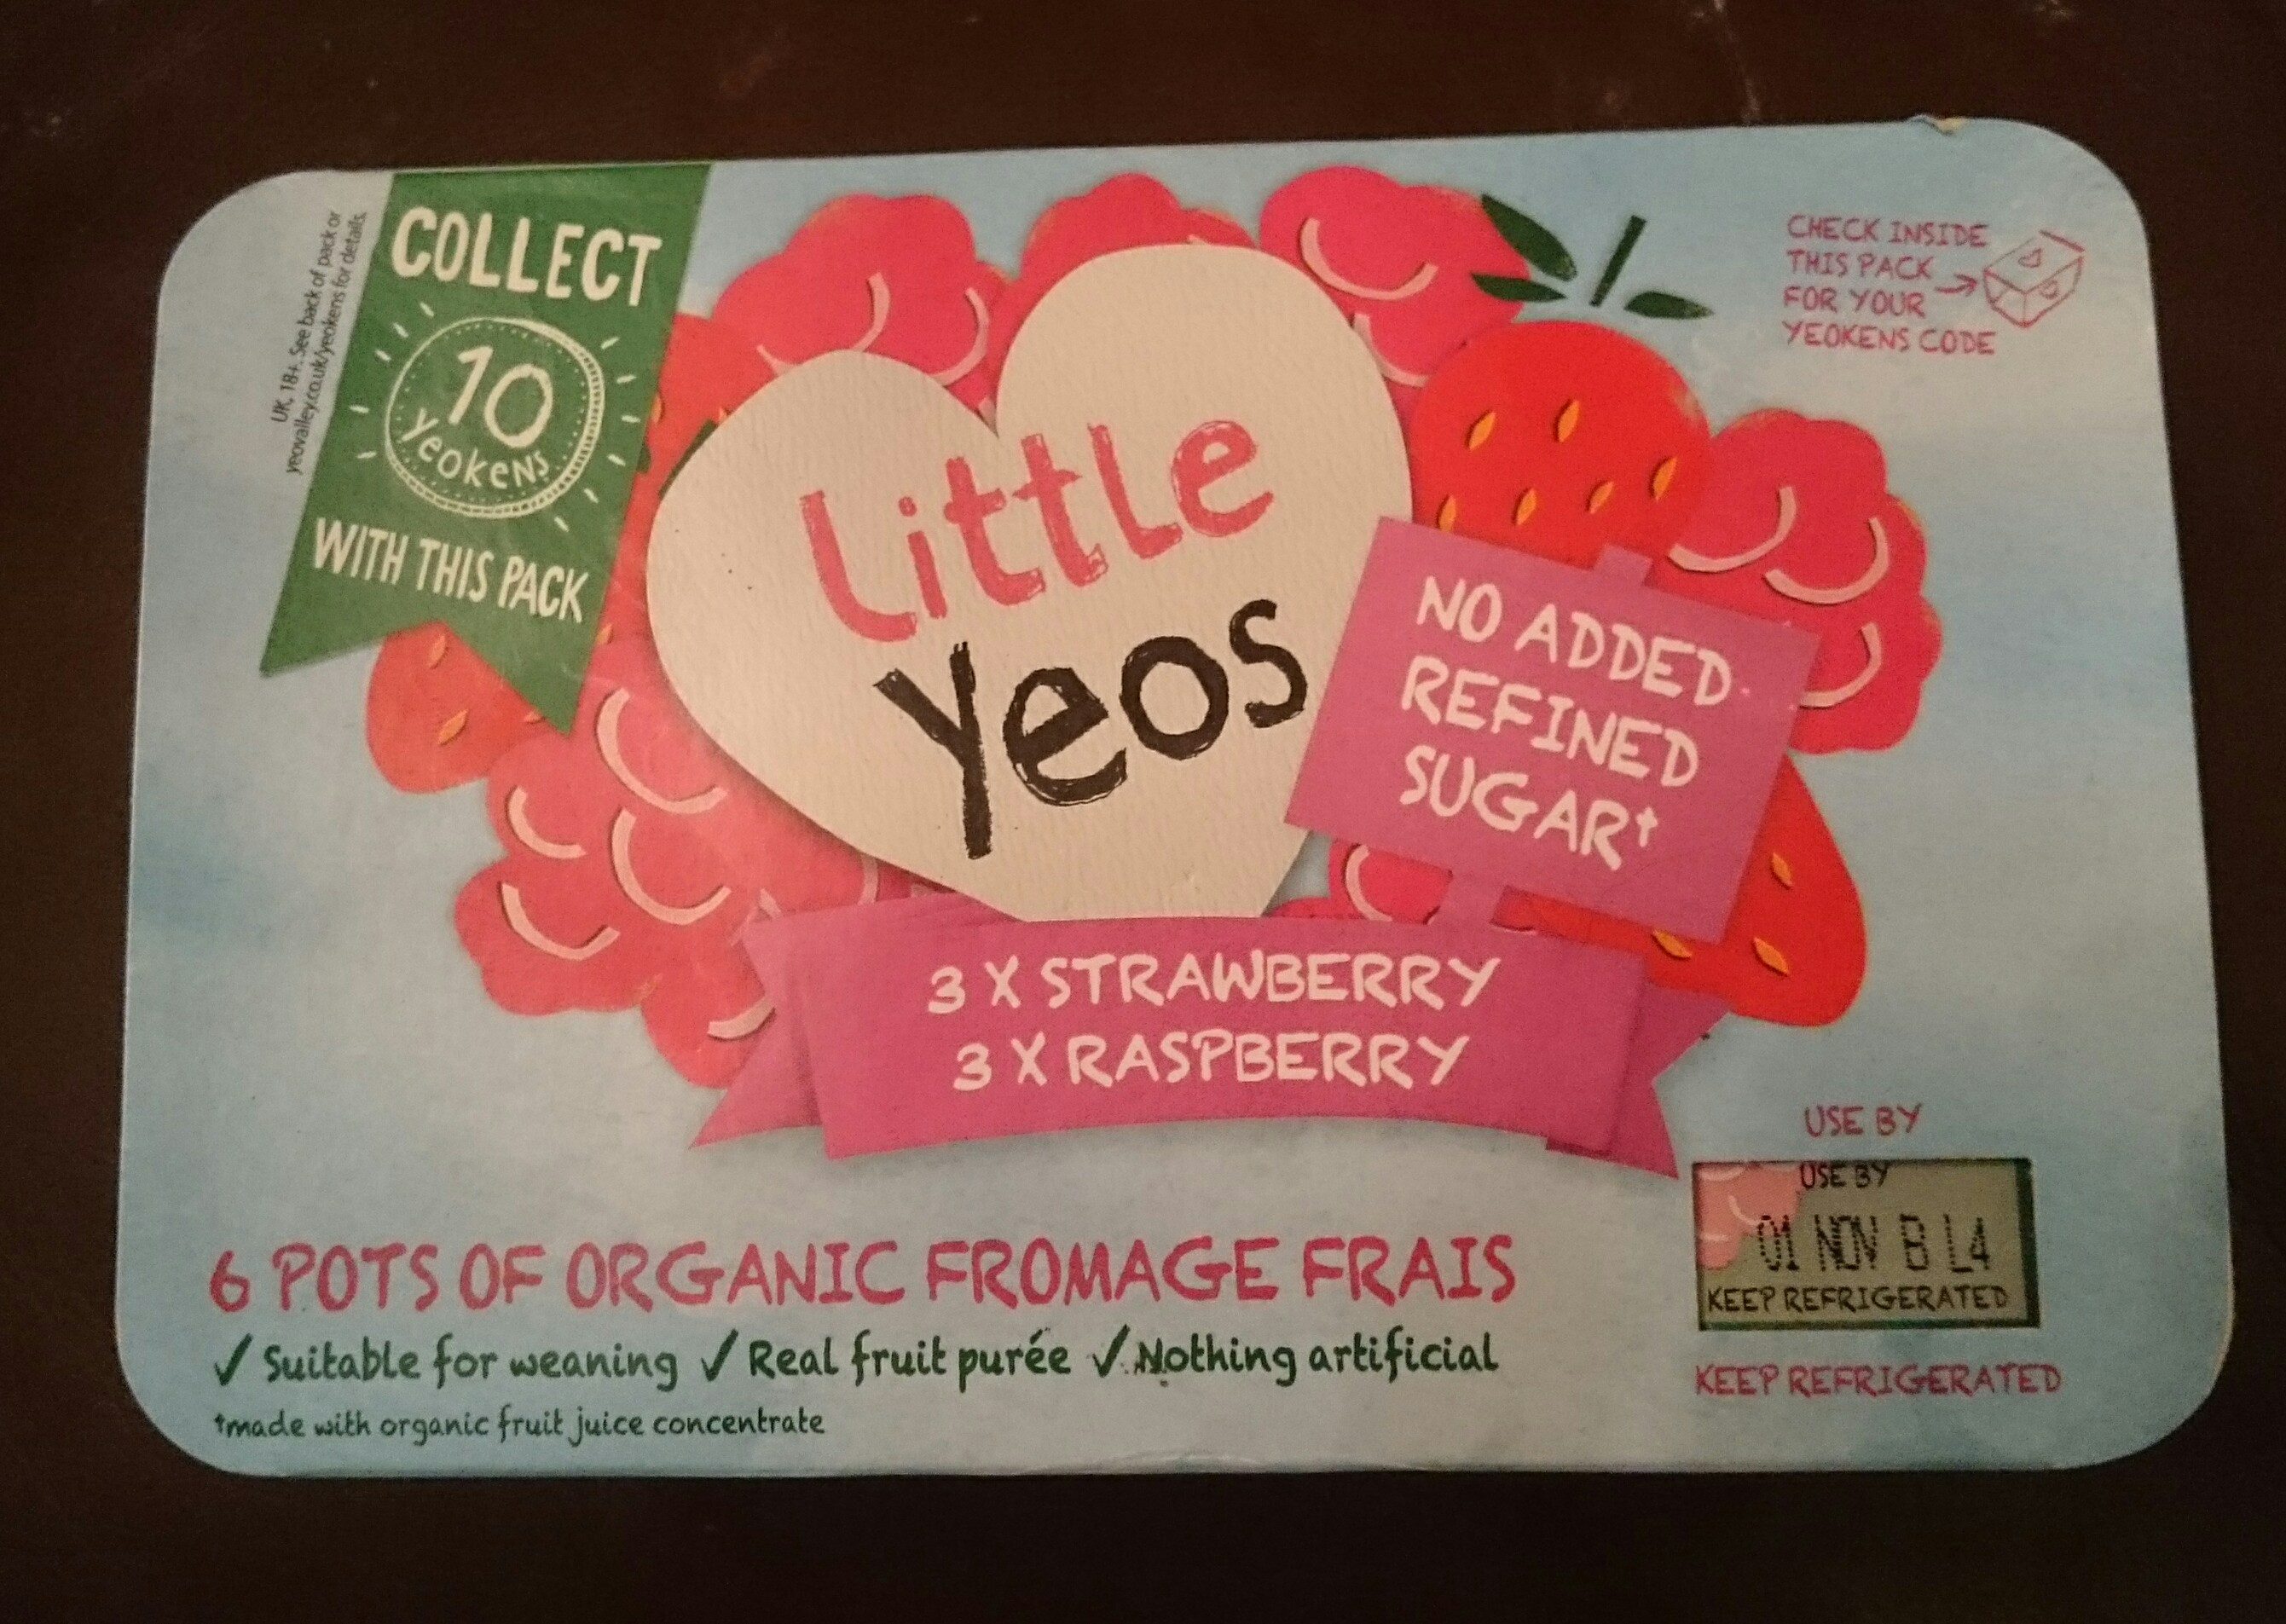 little-yeos-oxo-tot-review-midwifeandlife.com